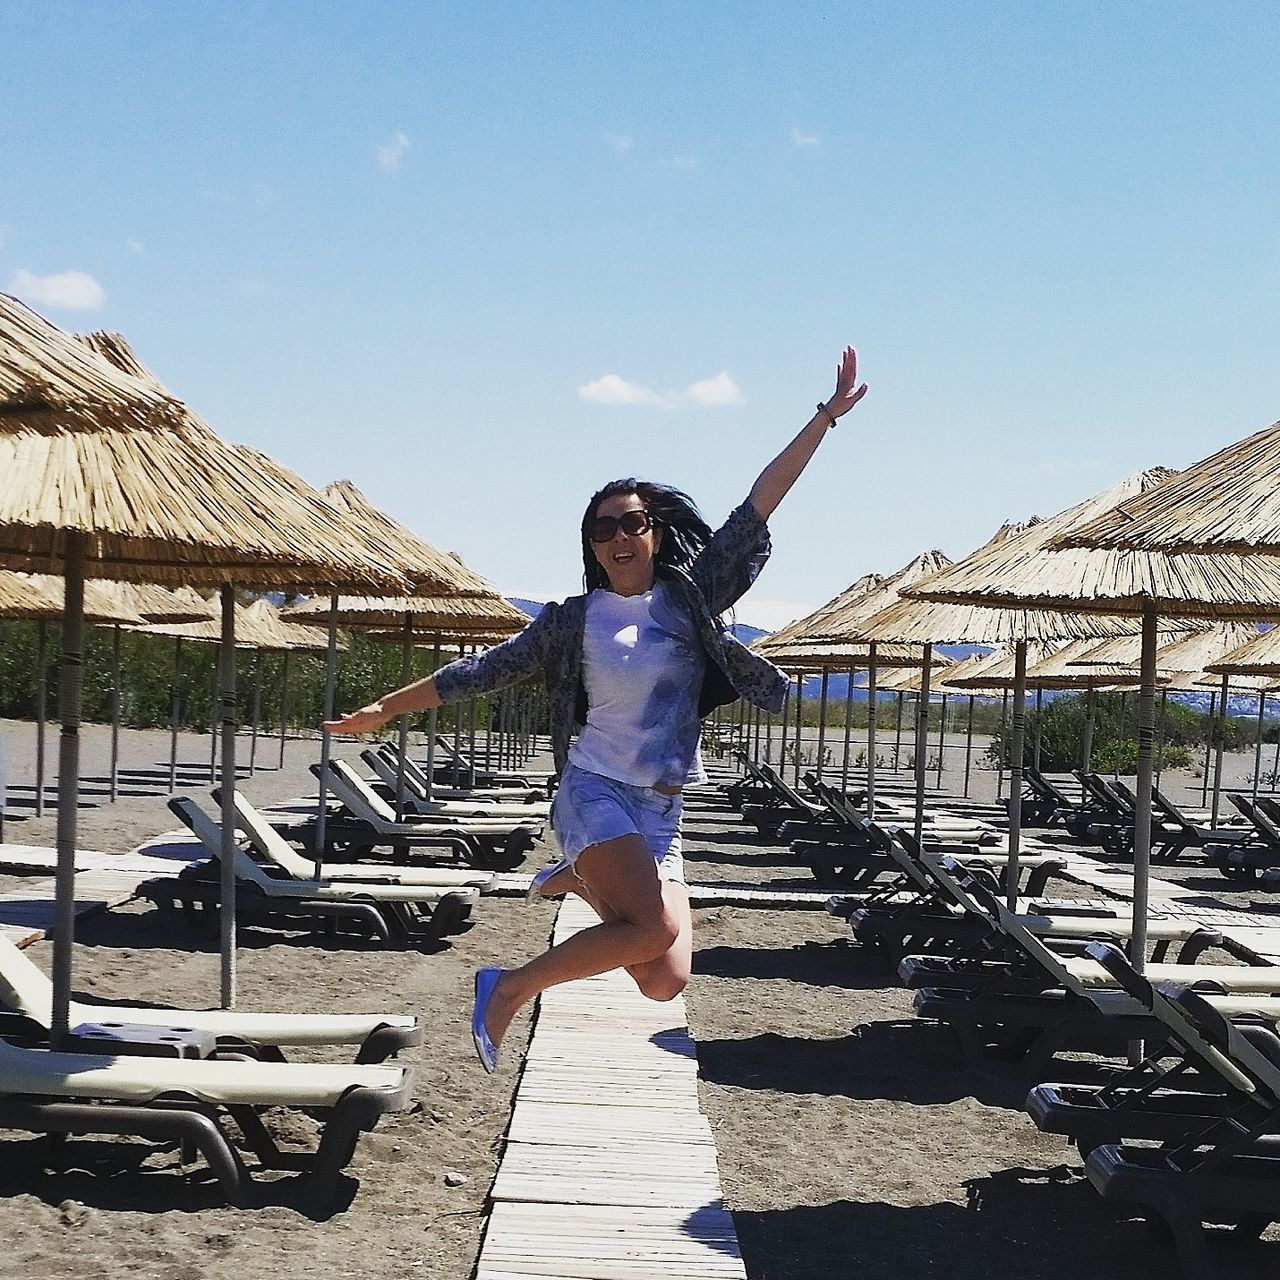 Life is a beach! One Person Happiness Sky Motion Beach Adventure Holiday Trip joy jumping life Blue Sky